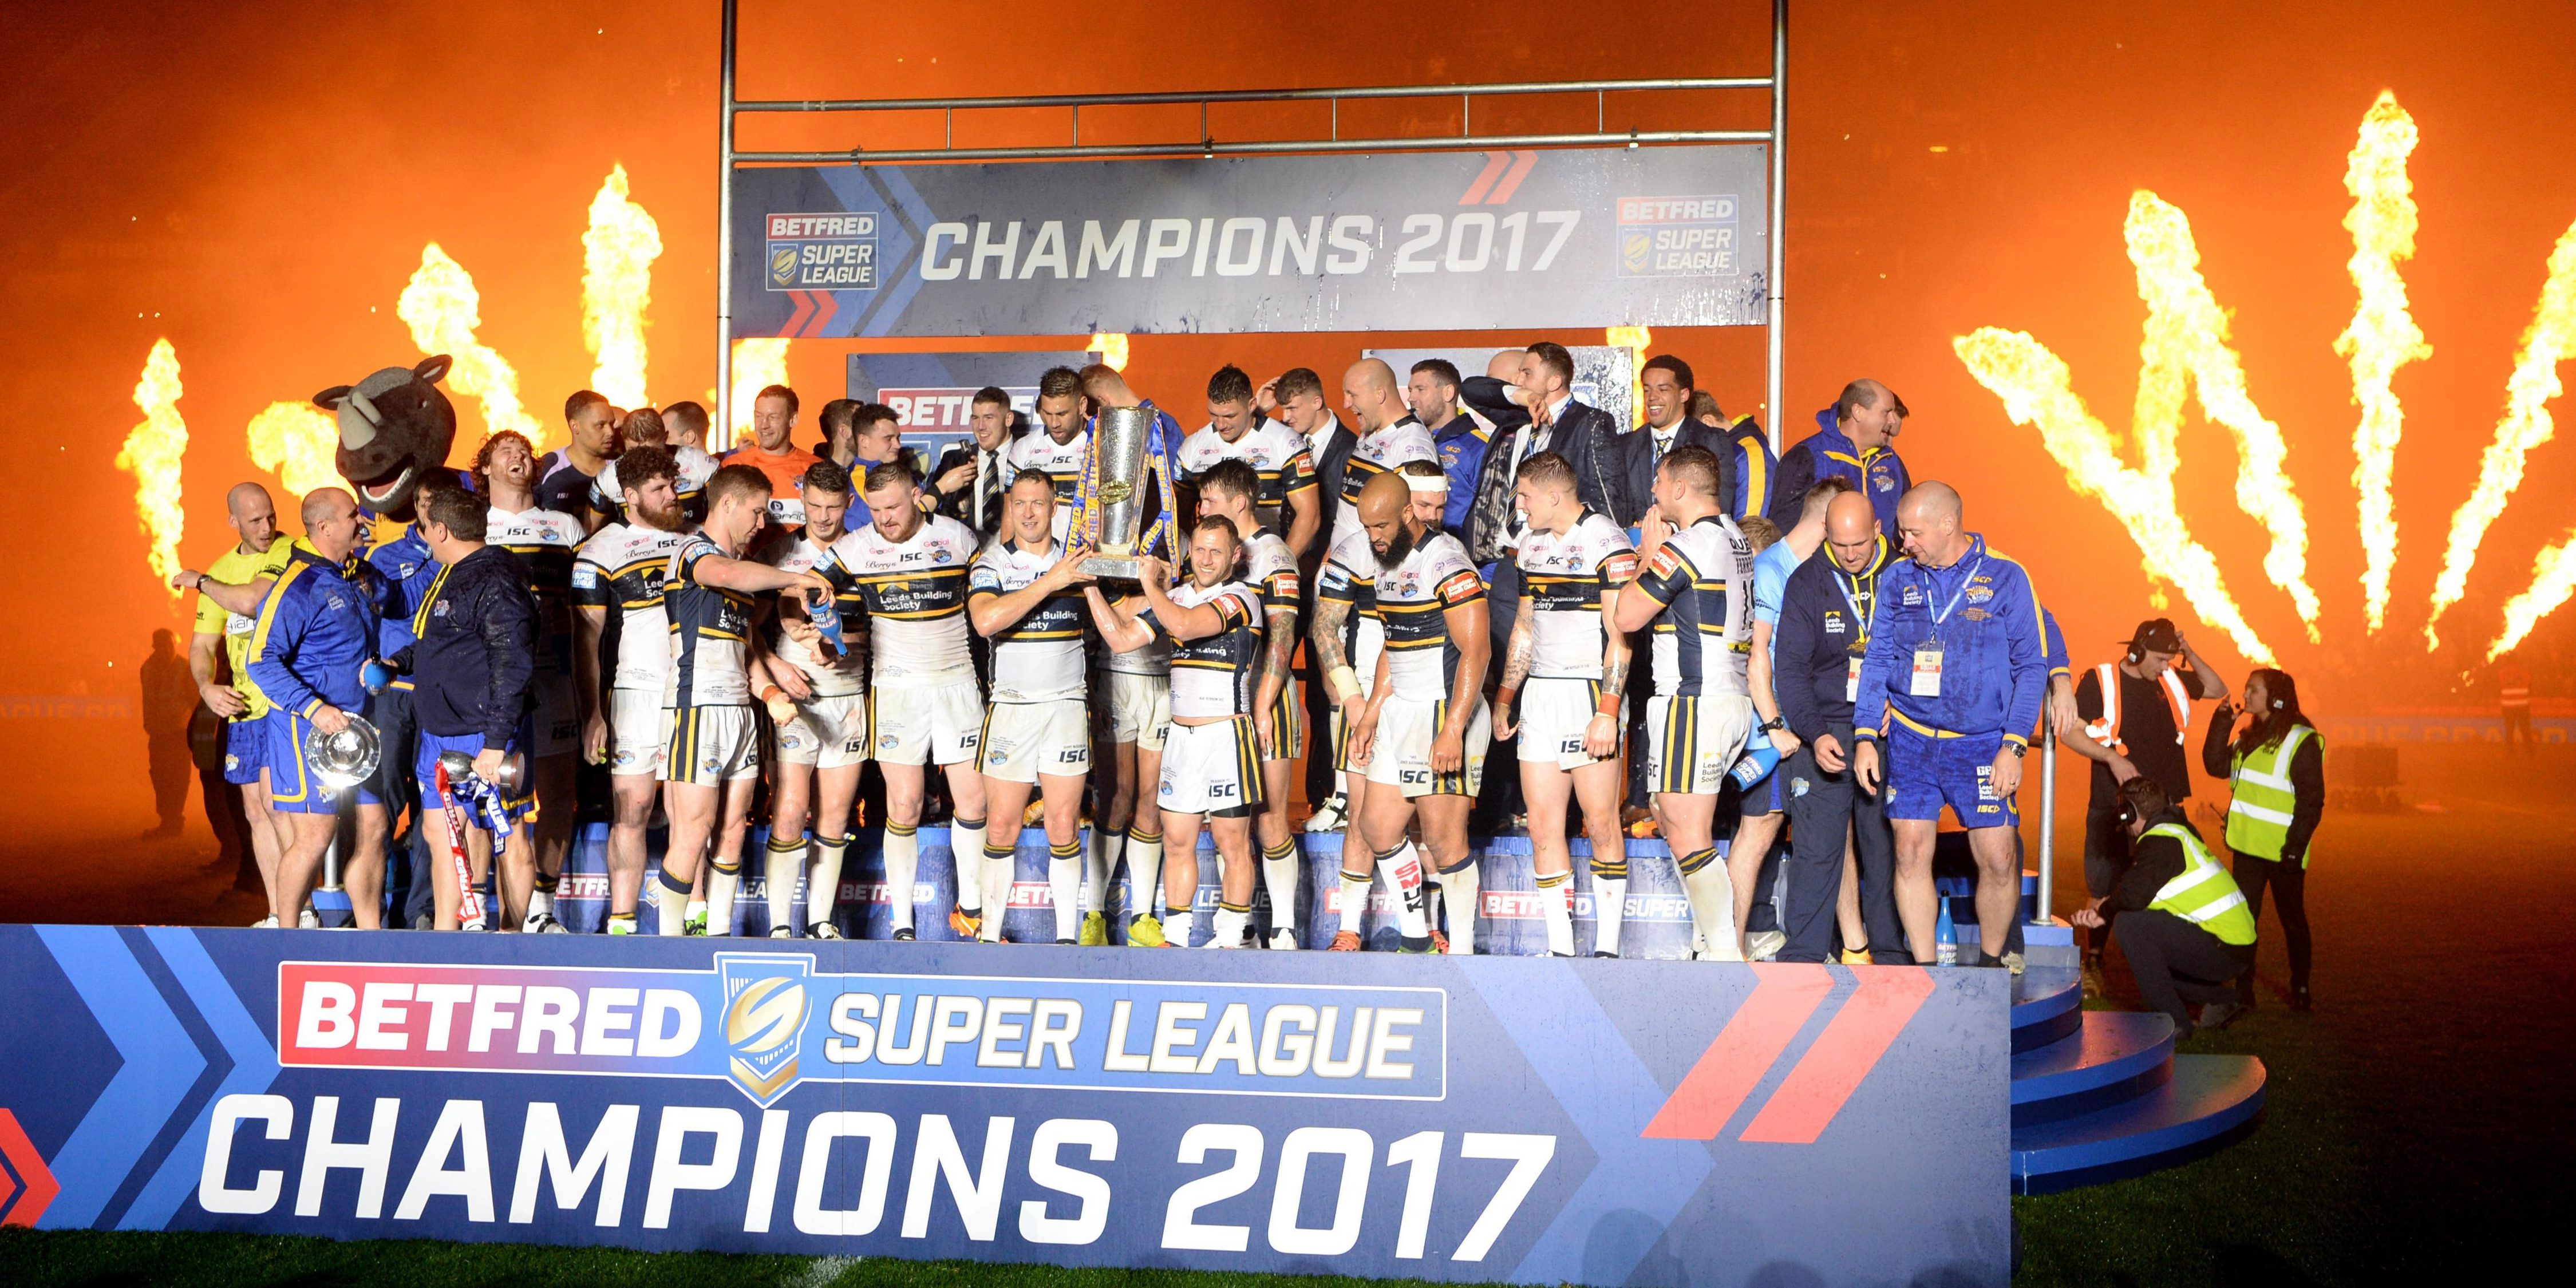 Leeds Rhinos won the title last year but the way teams can win Super League looks set to change